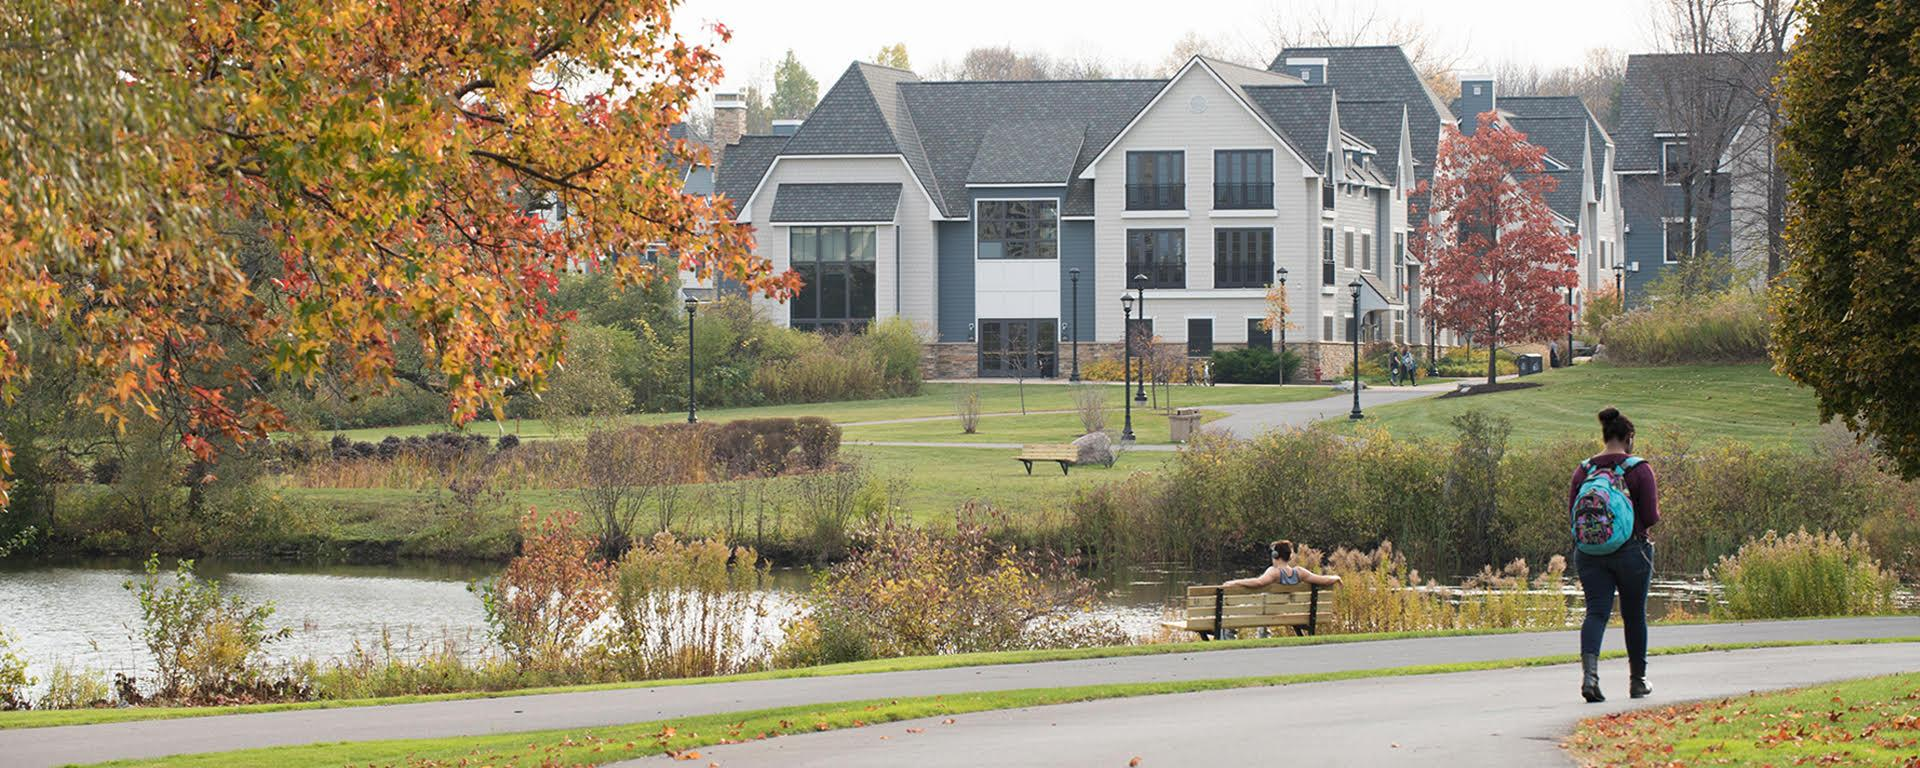 Scene of campus looking across Glimmerglass Lagoon to The Village